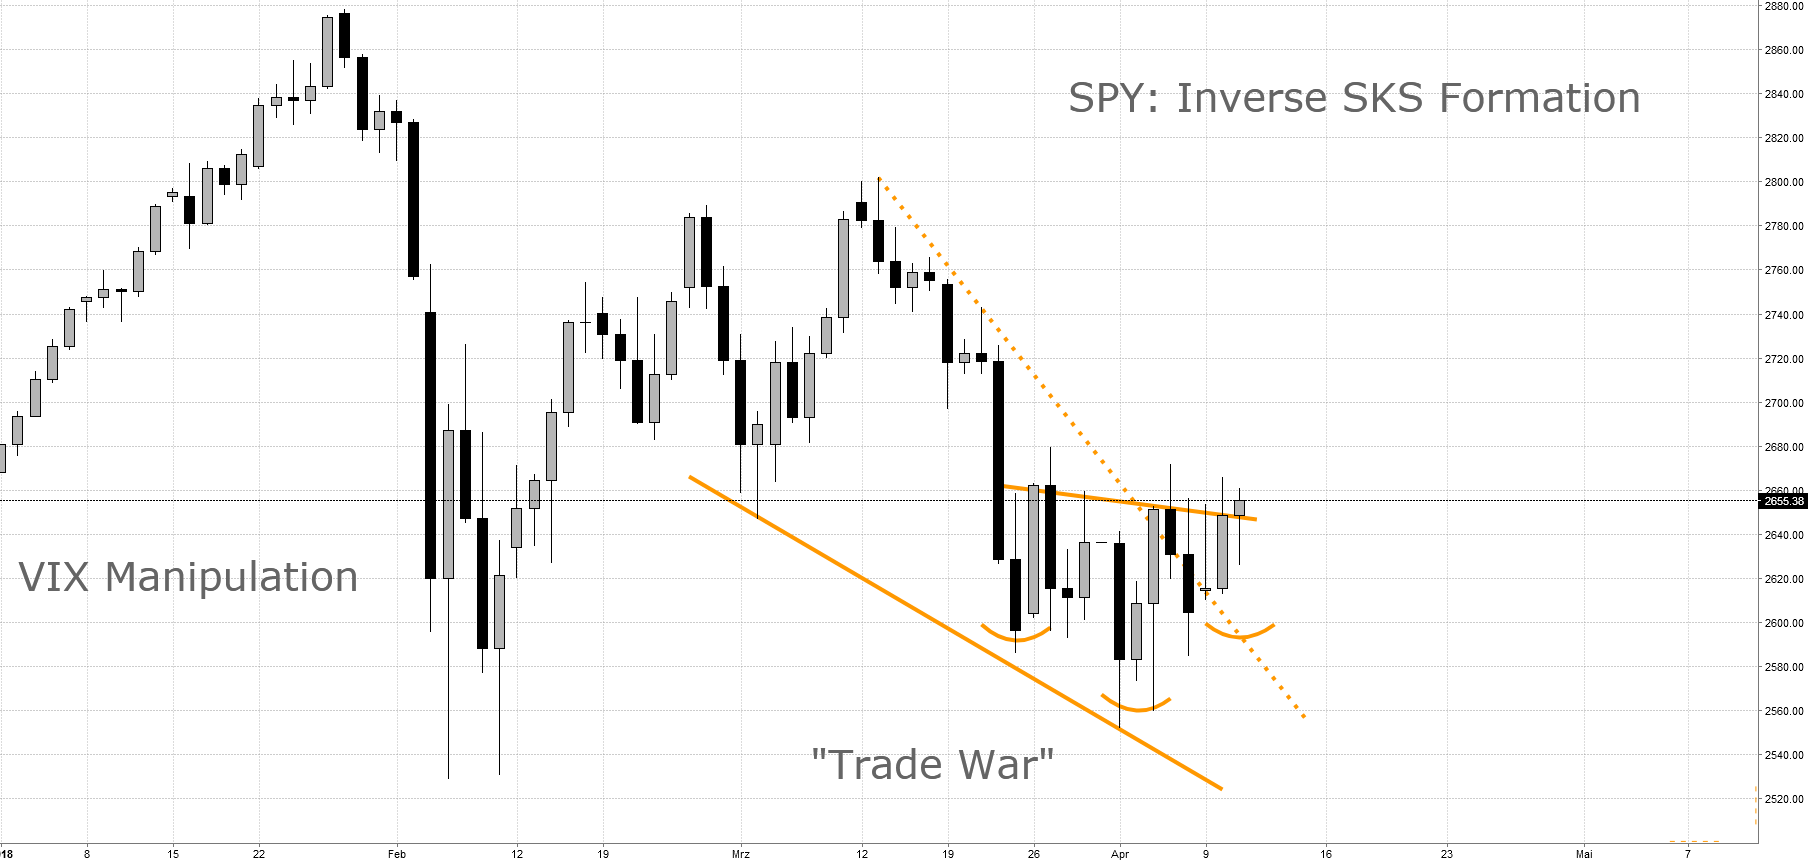 SPY: Inverse SKS Formation